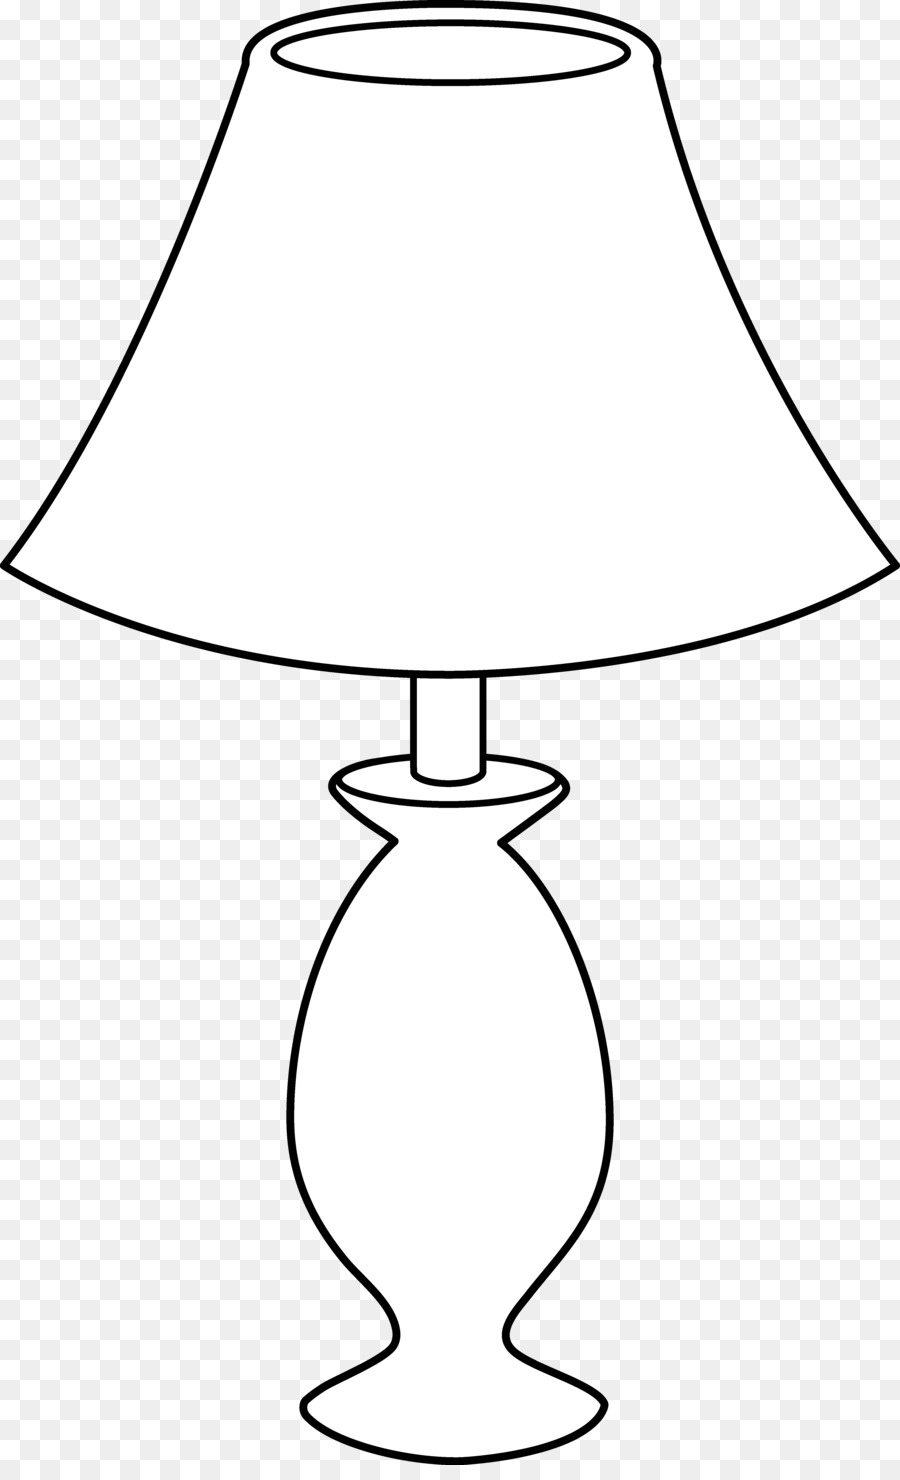 table lamp black and white incandescent light bulb clip art - lamp clip png download